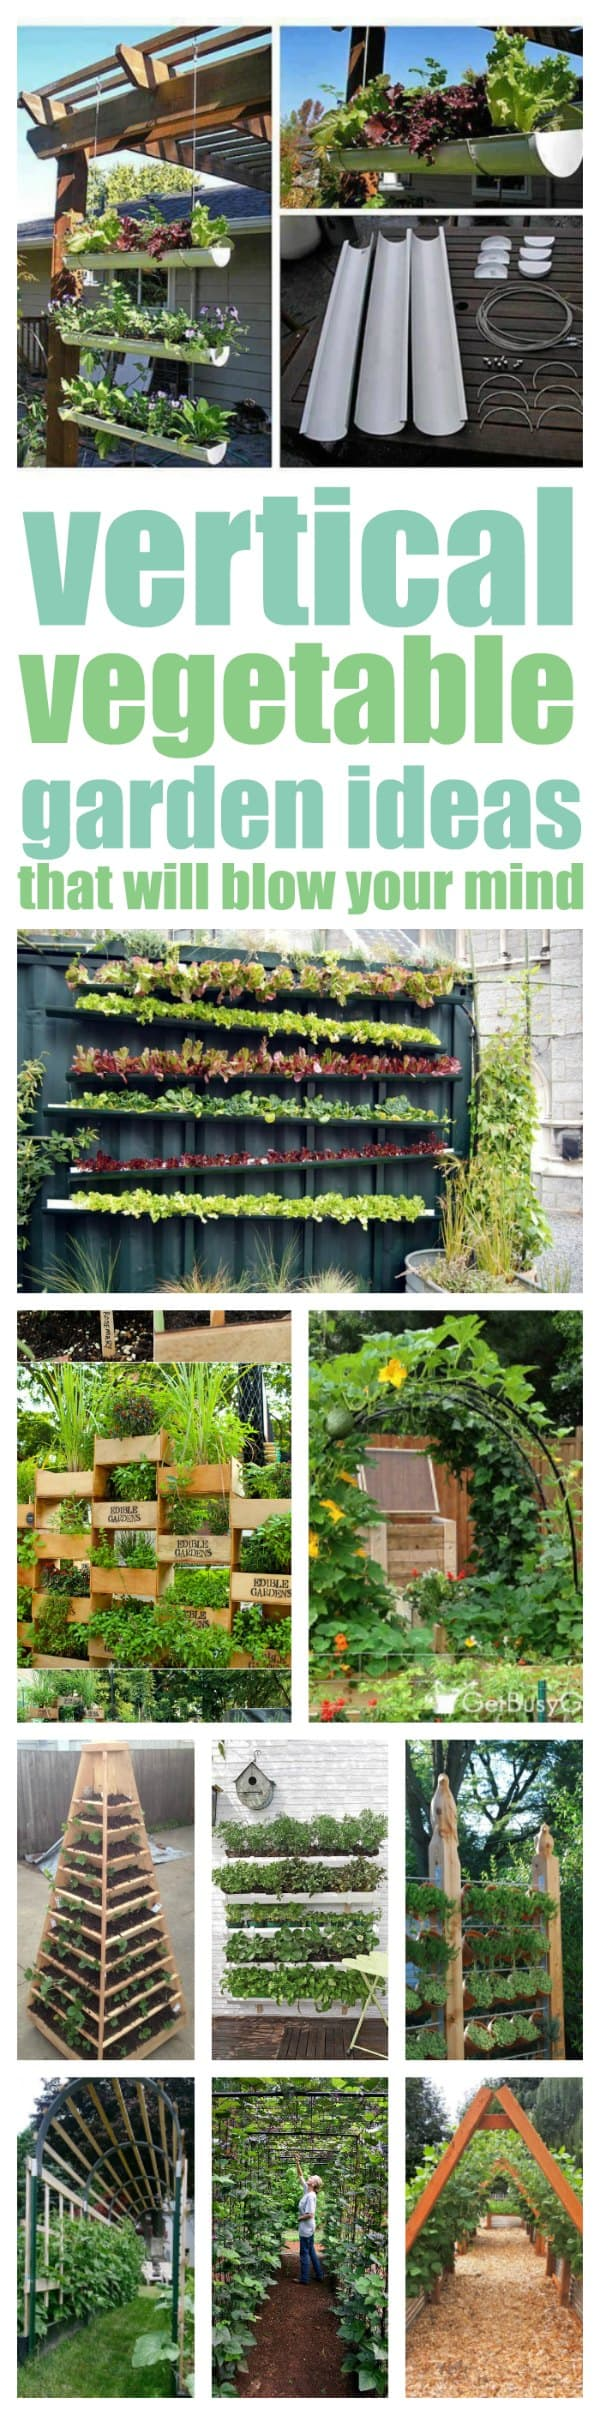 Vertical vegetable garden ideas that will solve your garden space problems